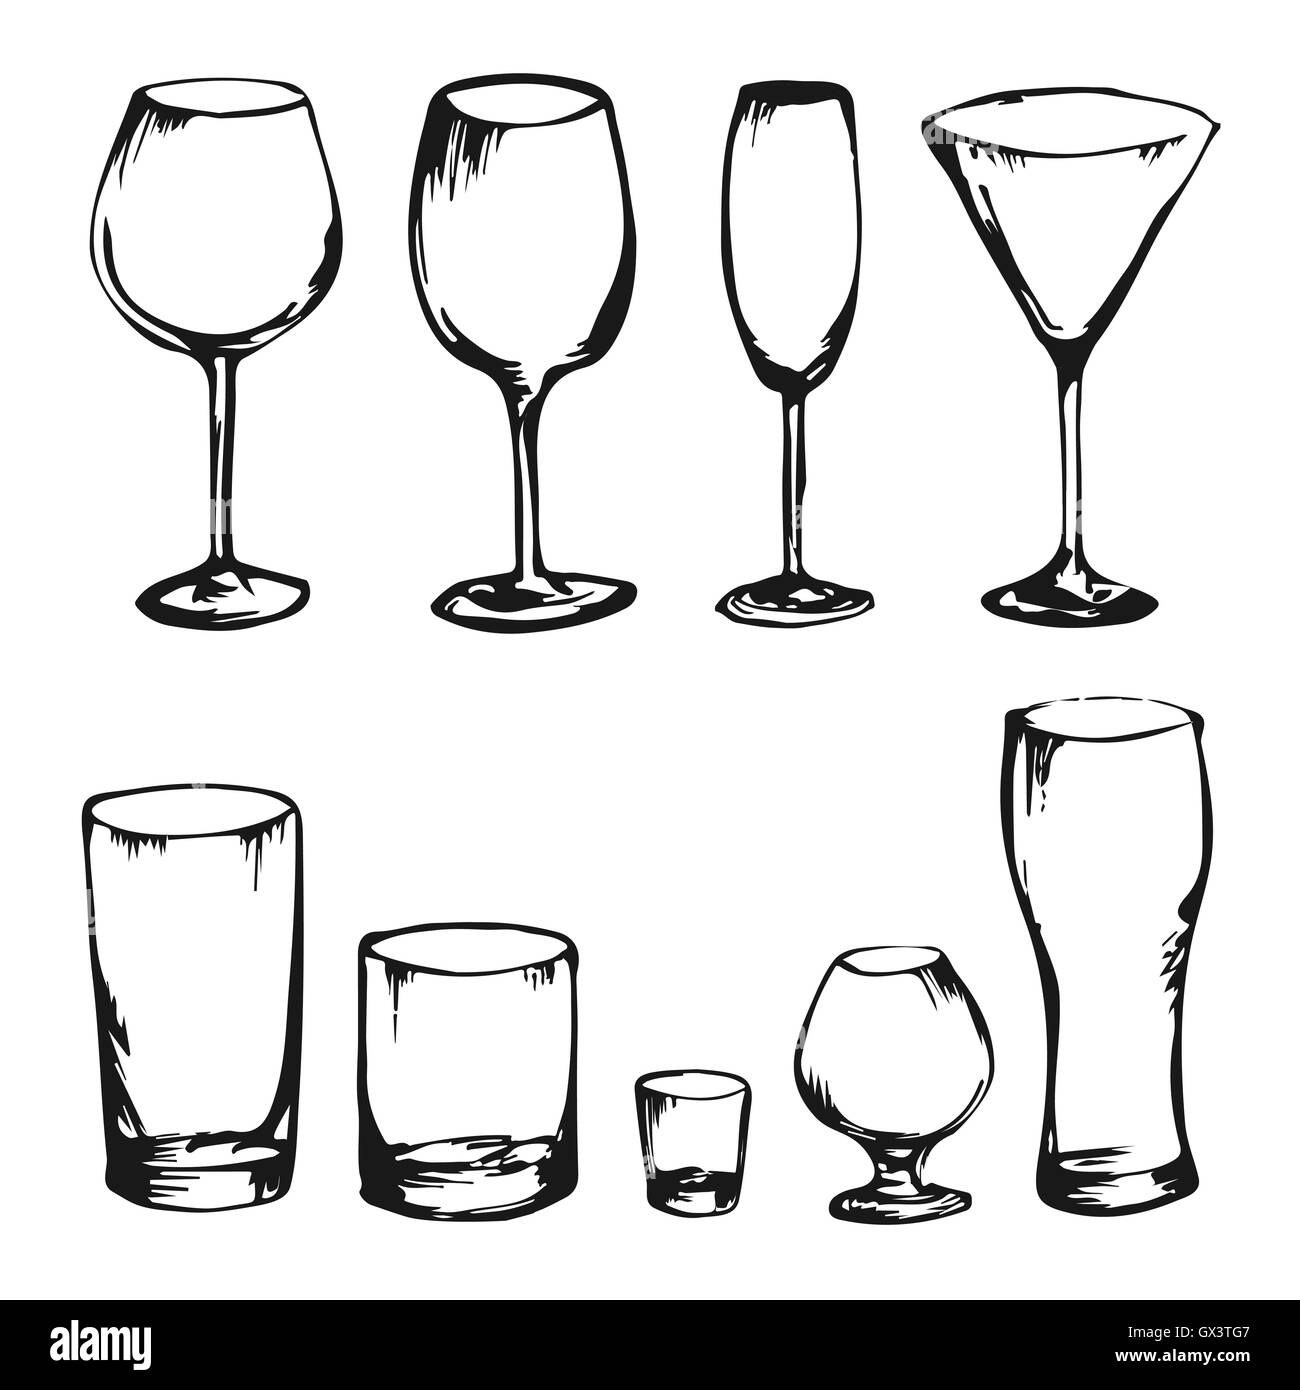 Alcohol Drink Drawing